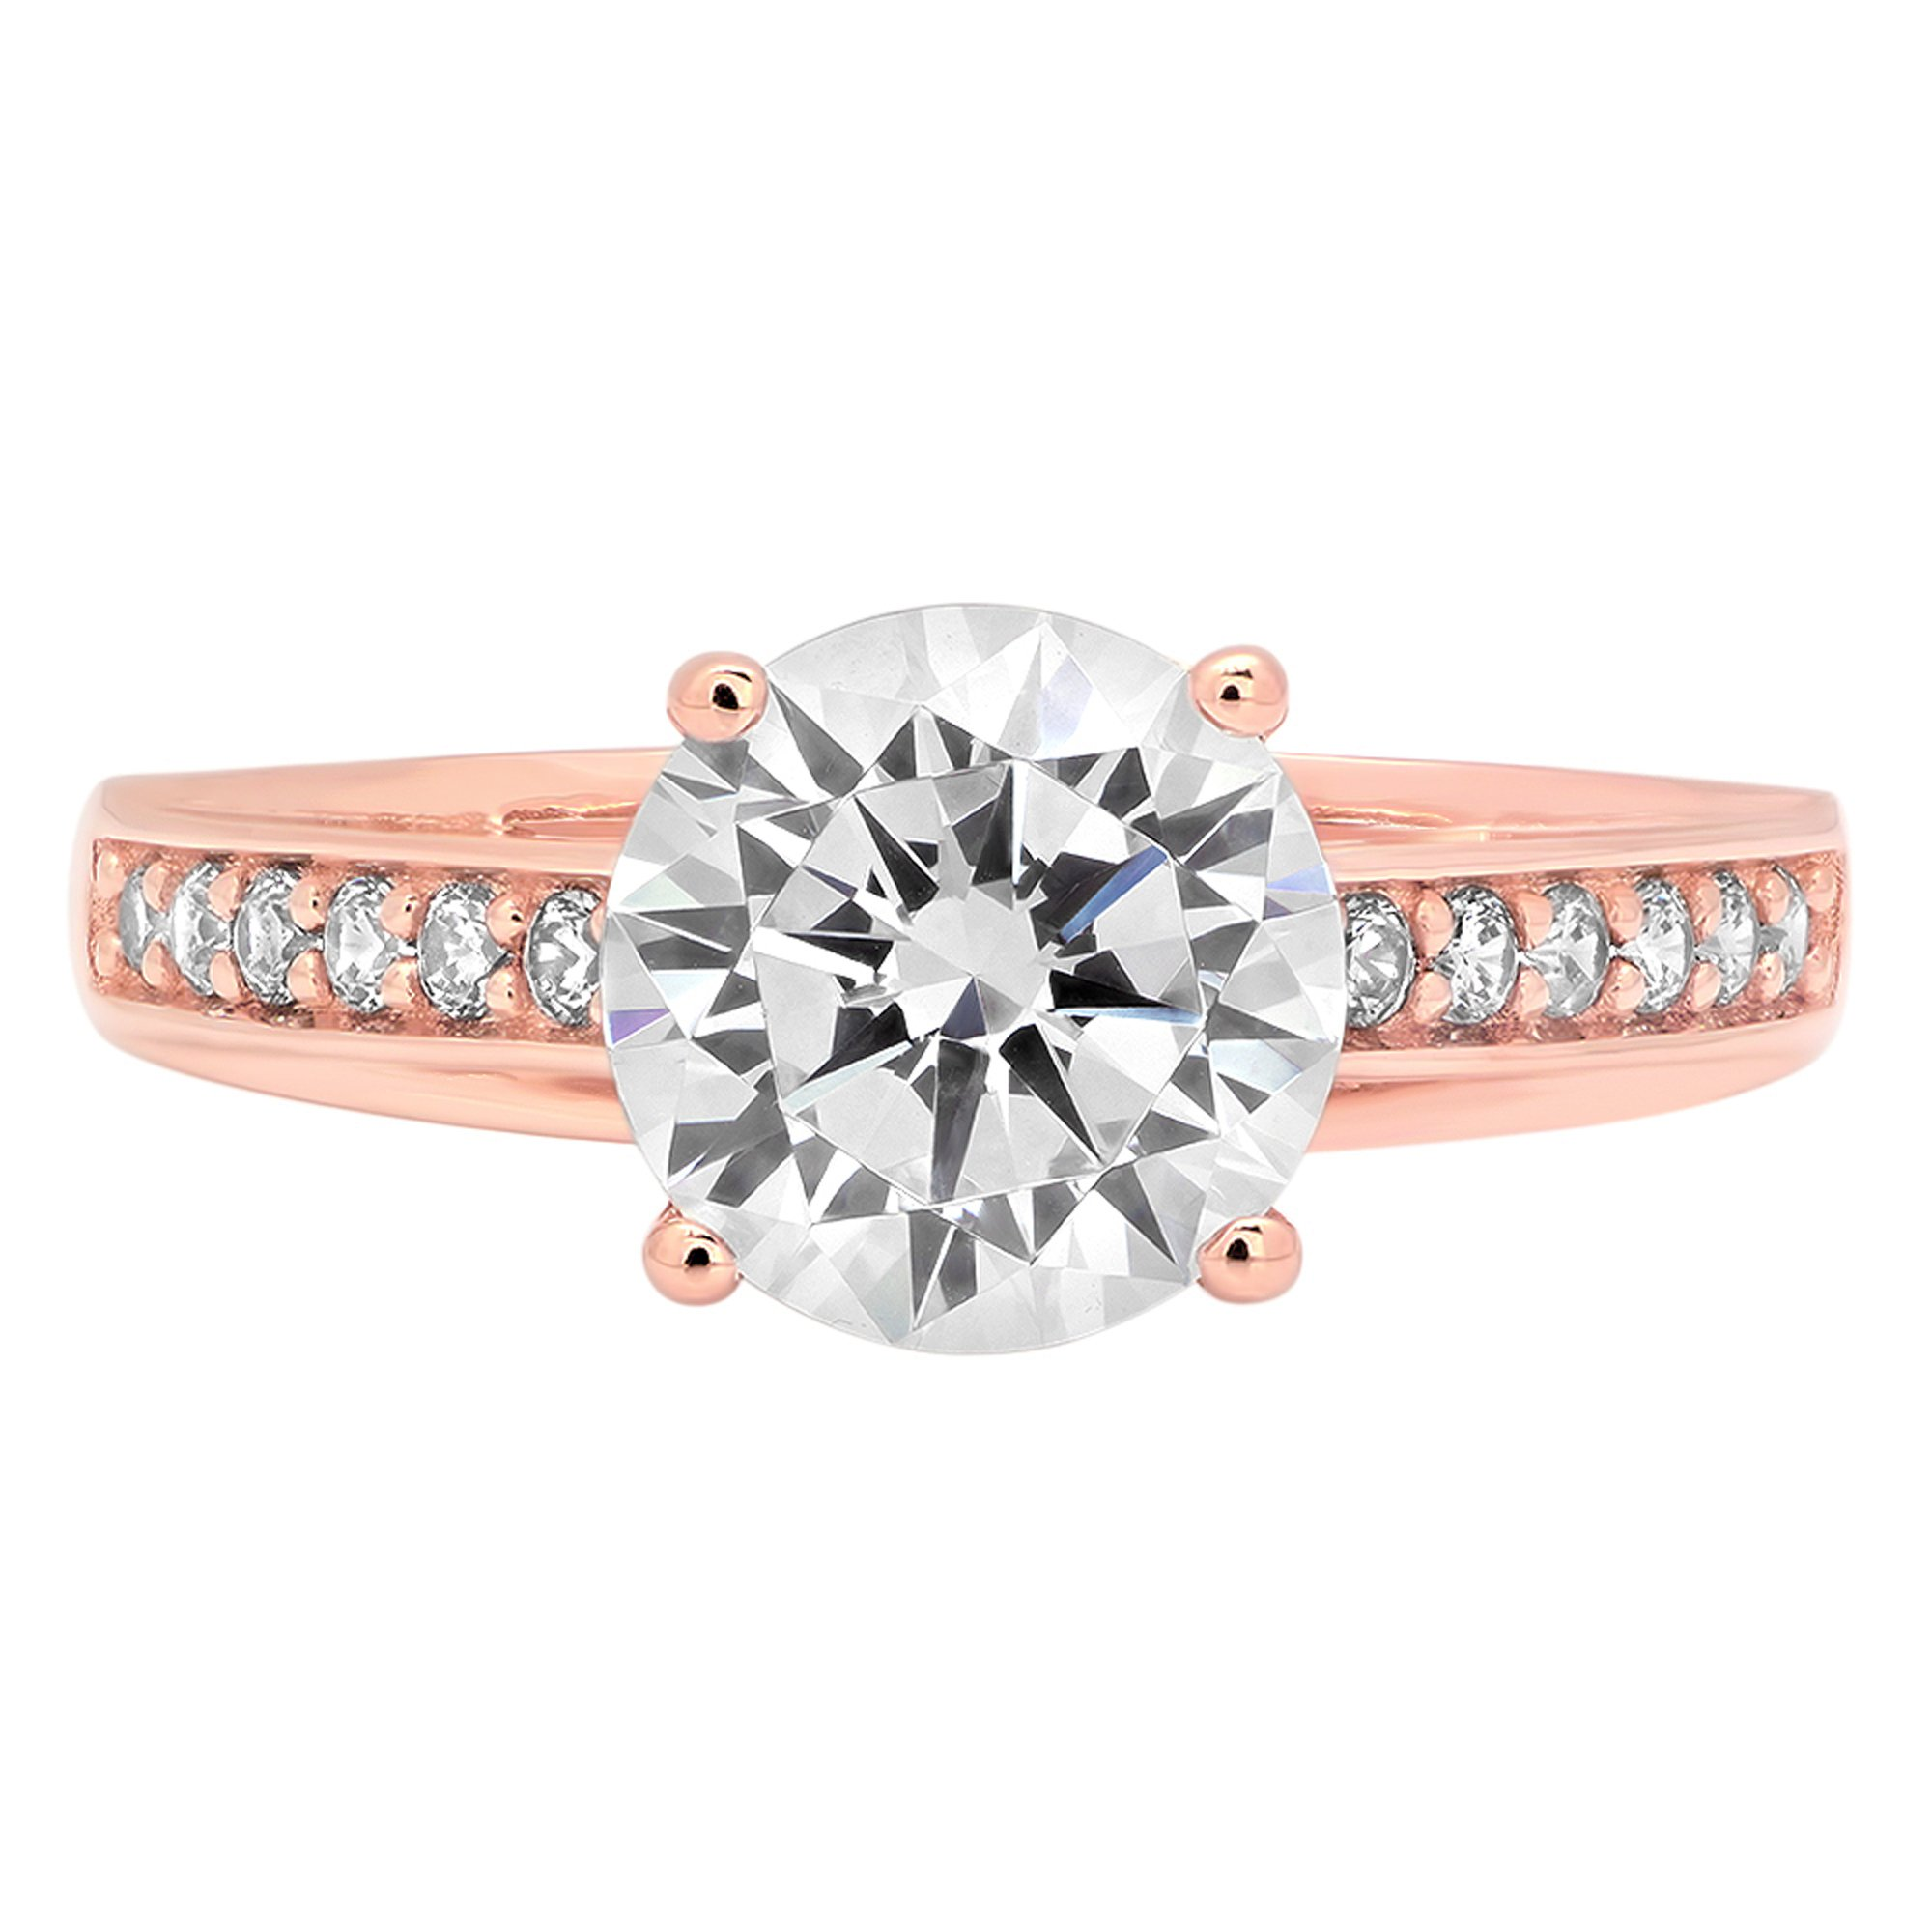 2.11ct Brilliant Round Cut Designer Accent Solitaire Promise Anniversary Statement Engagement Wedding Bridal Ring For Women Solid 14k Rose Gold, 6.5